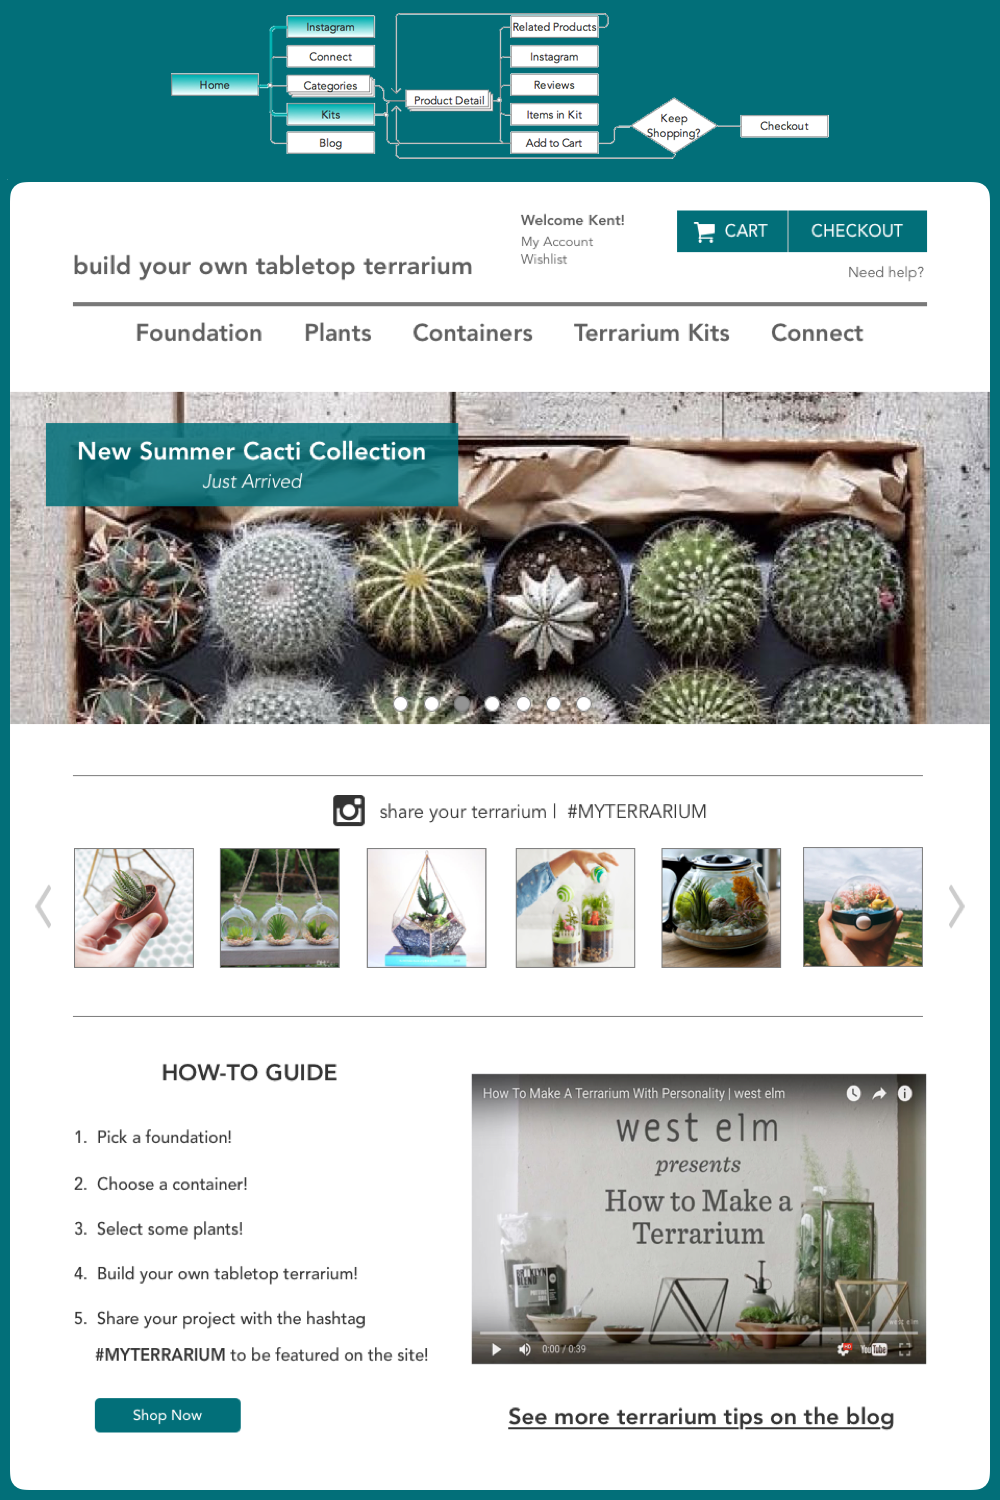 - Kent starts on the home page where new products are being readily displayed for him. He checks out the Instagram feed to see what cool terrariums other people have made. He sees a few he thinks Alana might like!